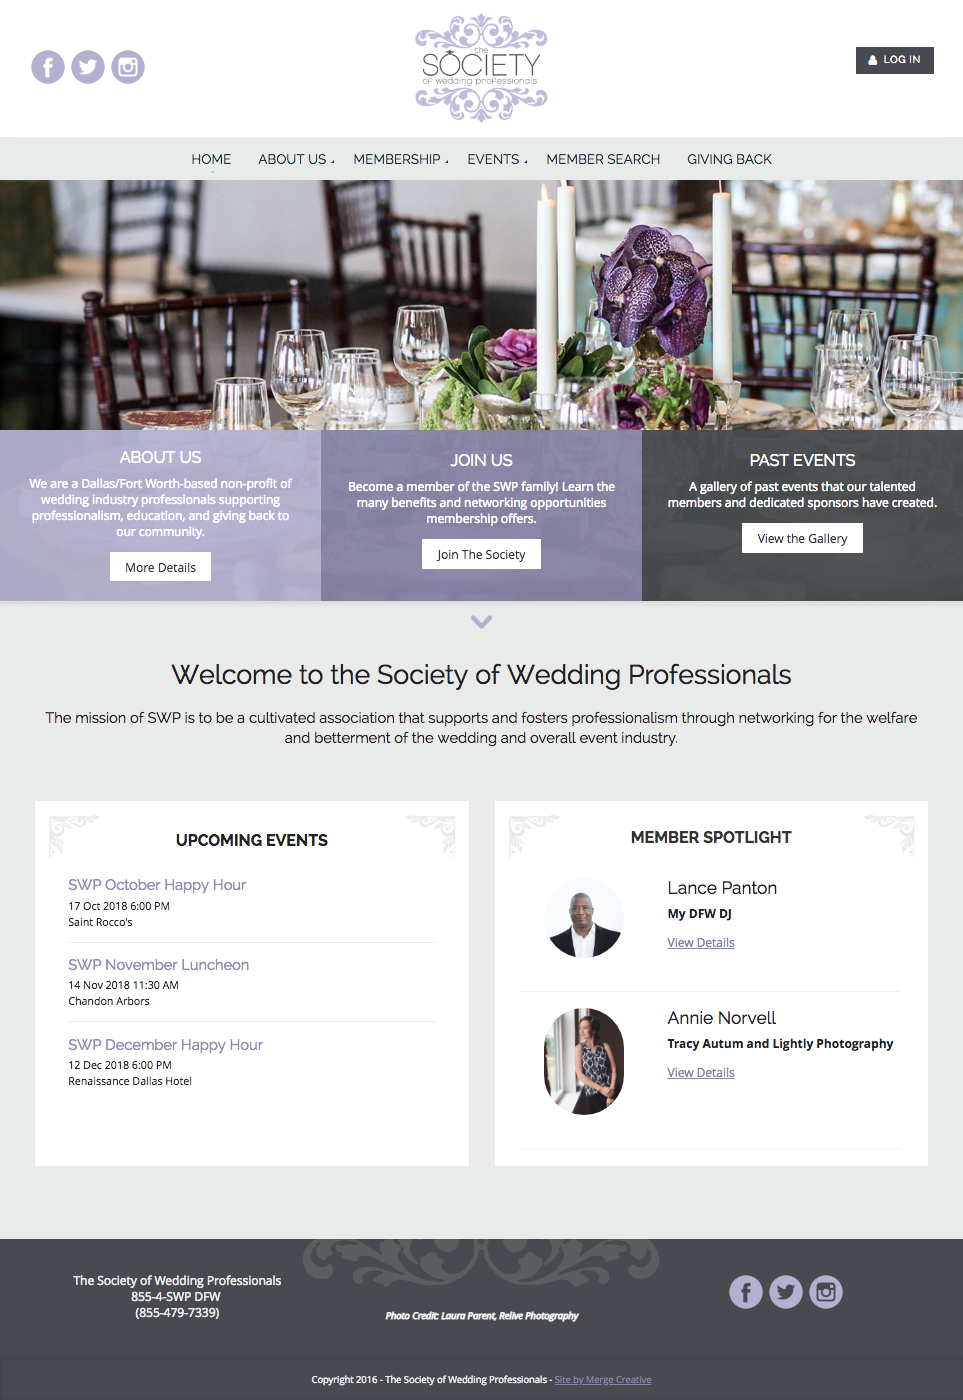 Society of Wedding Professionals website - Wild Apricot